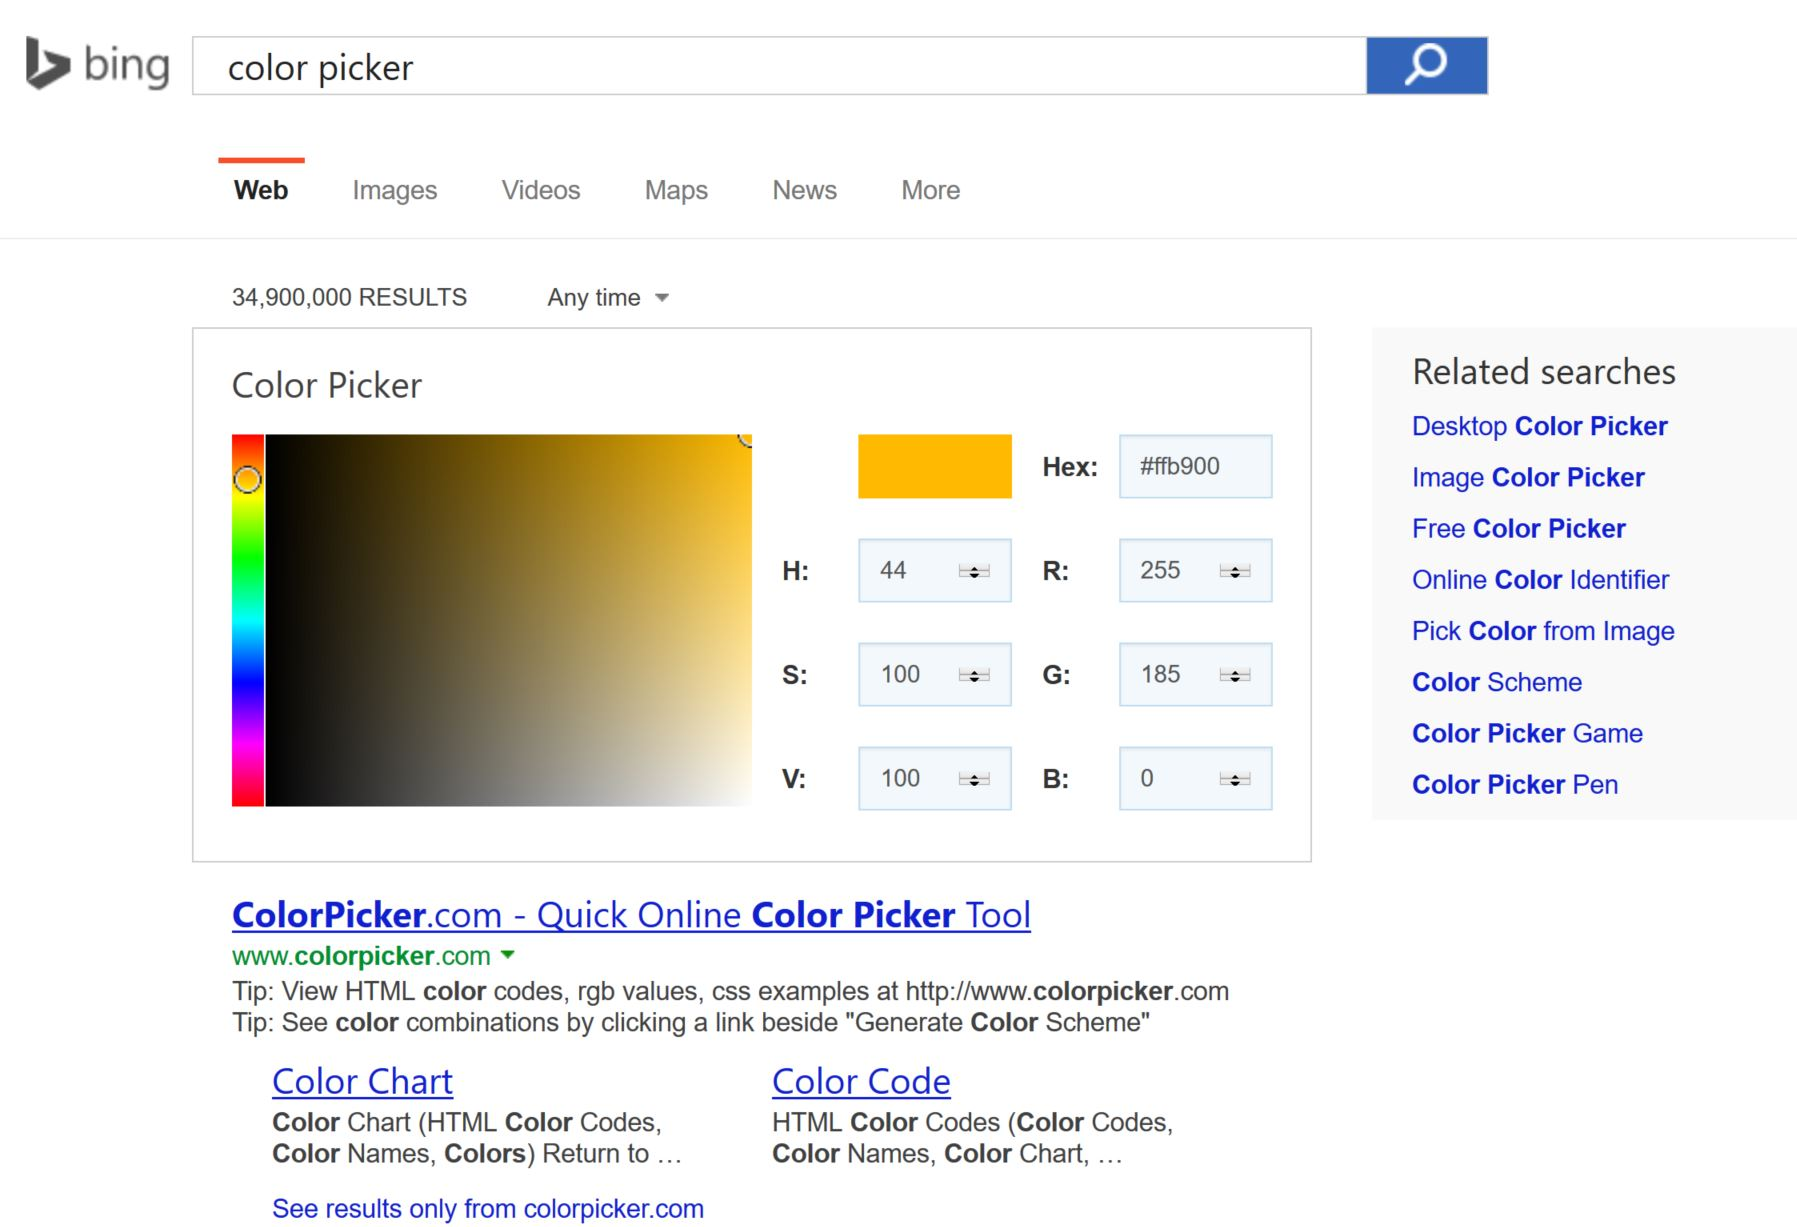 Microsoft Bing Now Offers Color Picker On Search Results Page ...